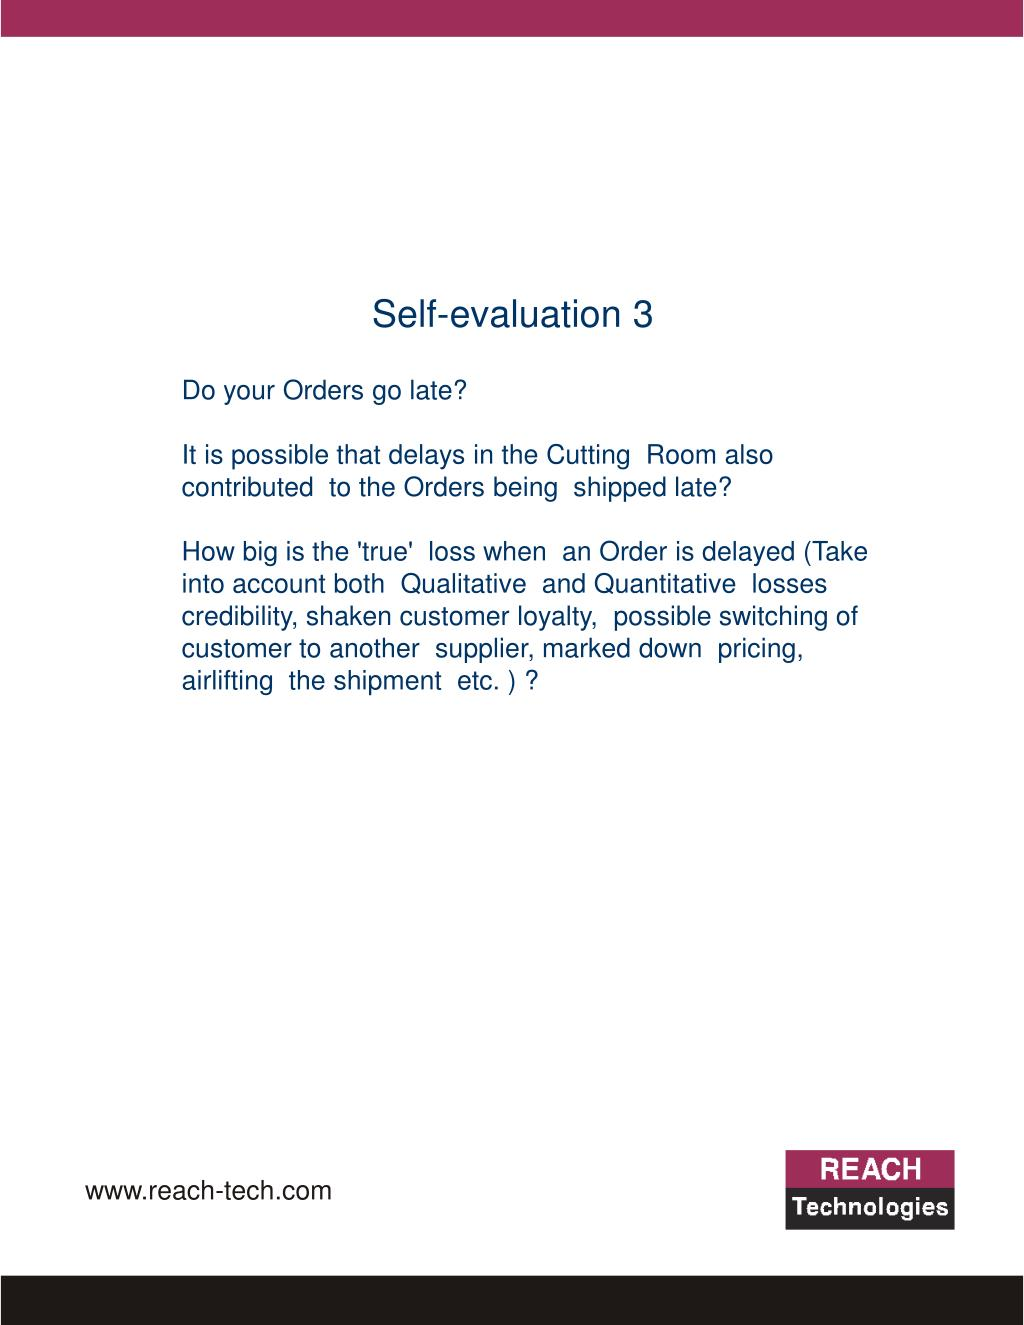 Self-evaluation 3